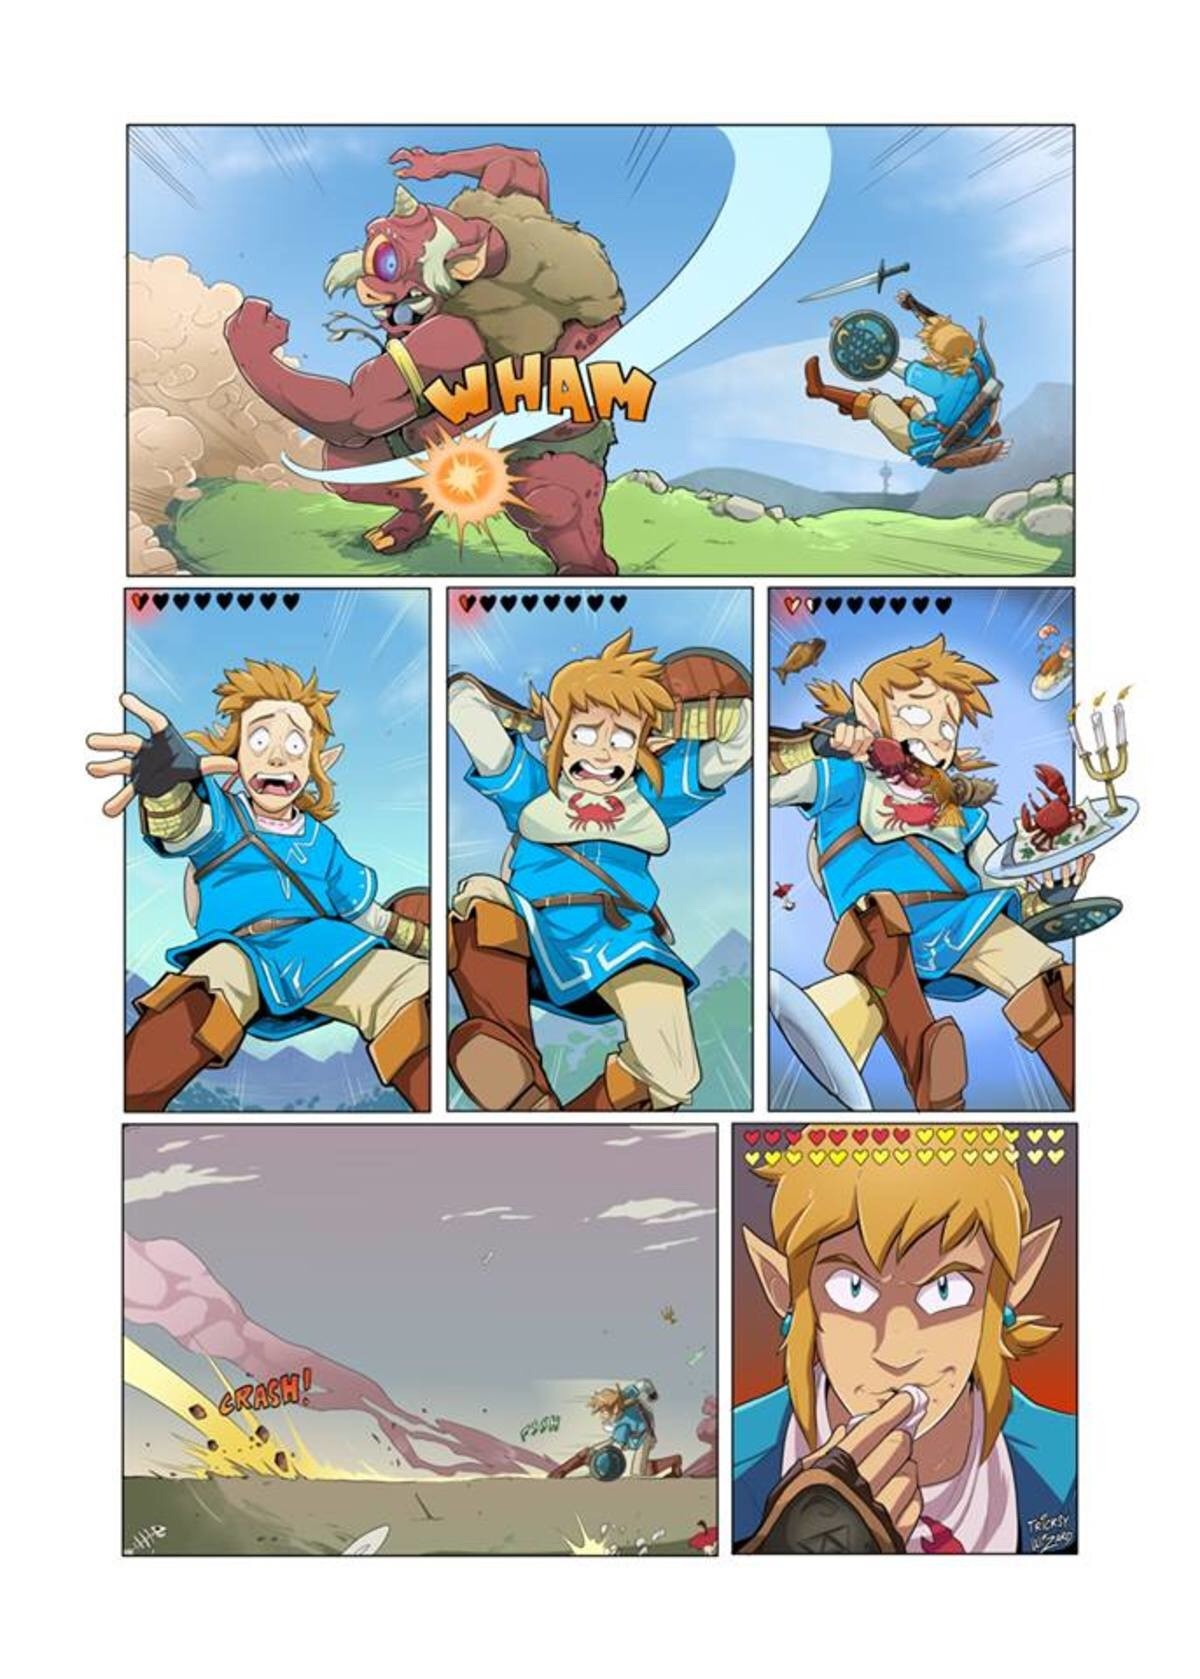 La logique de Breath of the wild